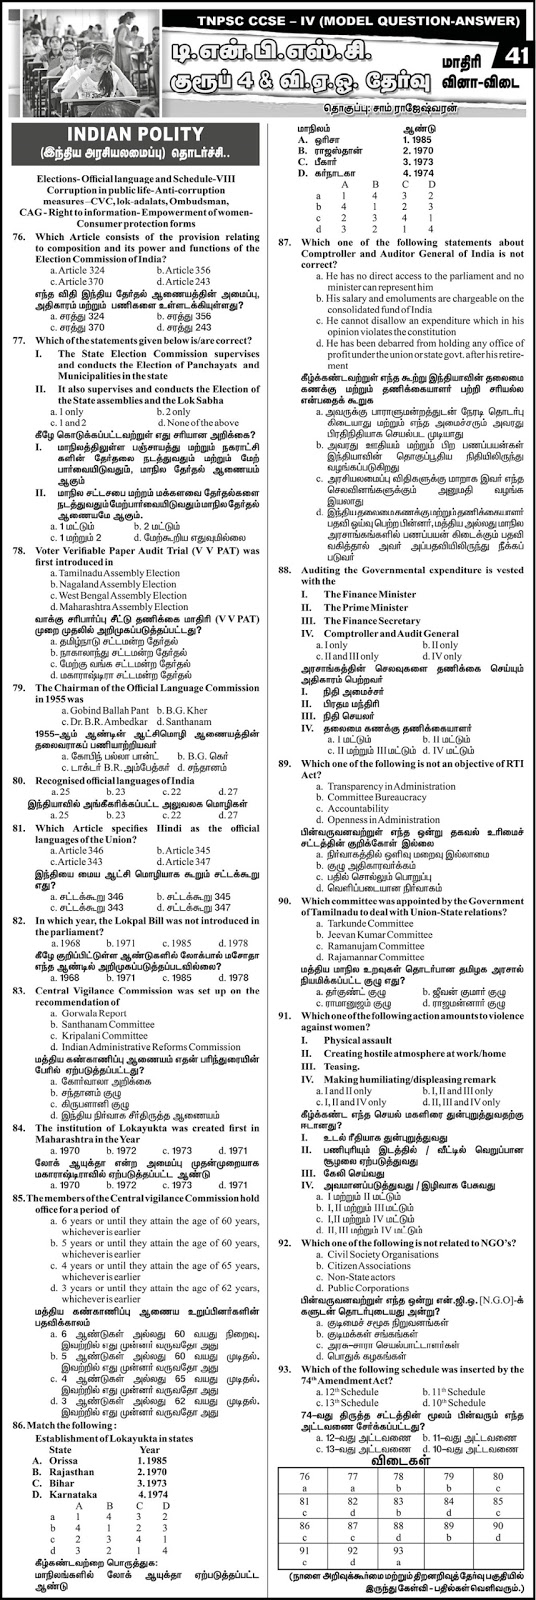 TNPSC Group 4 Indian Polity Questions Tamil (Dinathanthi Jan 7, 2018) Download as PDF